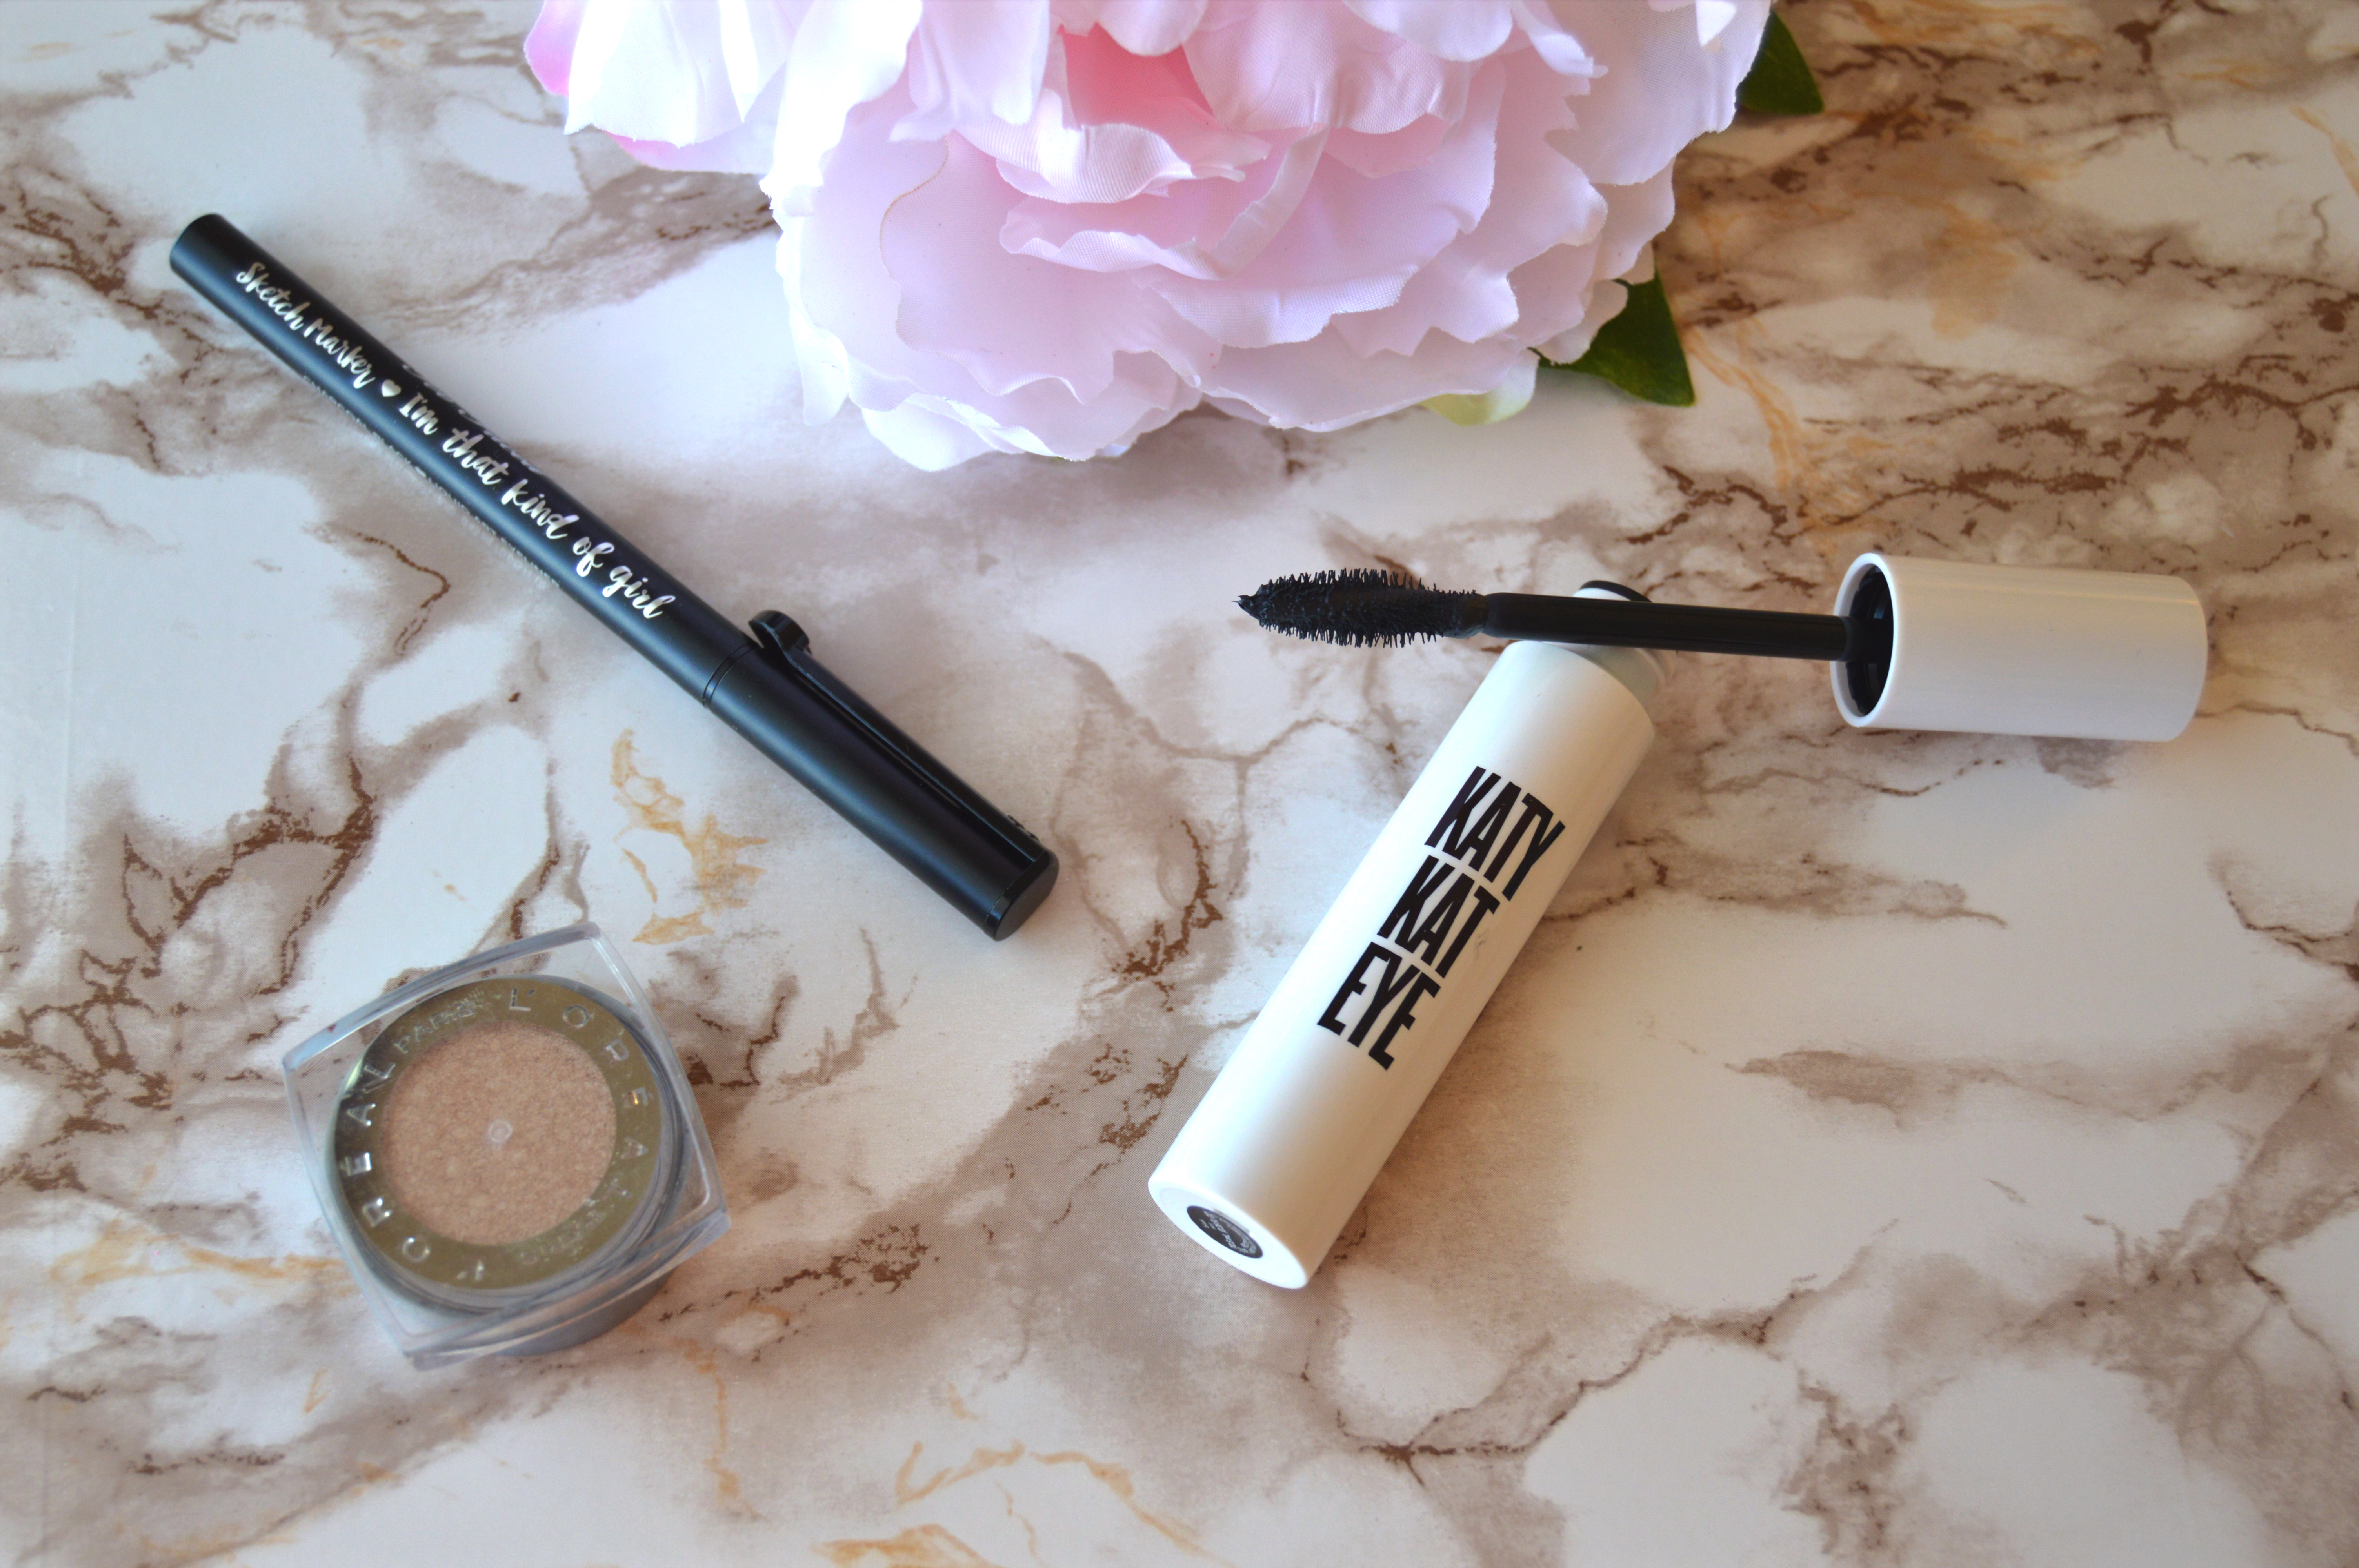 a9131d2f518 This week I decided to try out the Katy Kat Eye mascara. This mascara is a  collaboration between Covergirl and Katy Perry and I purchased the Black  color at ...